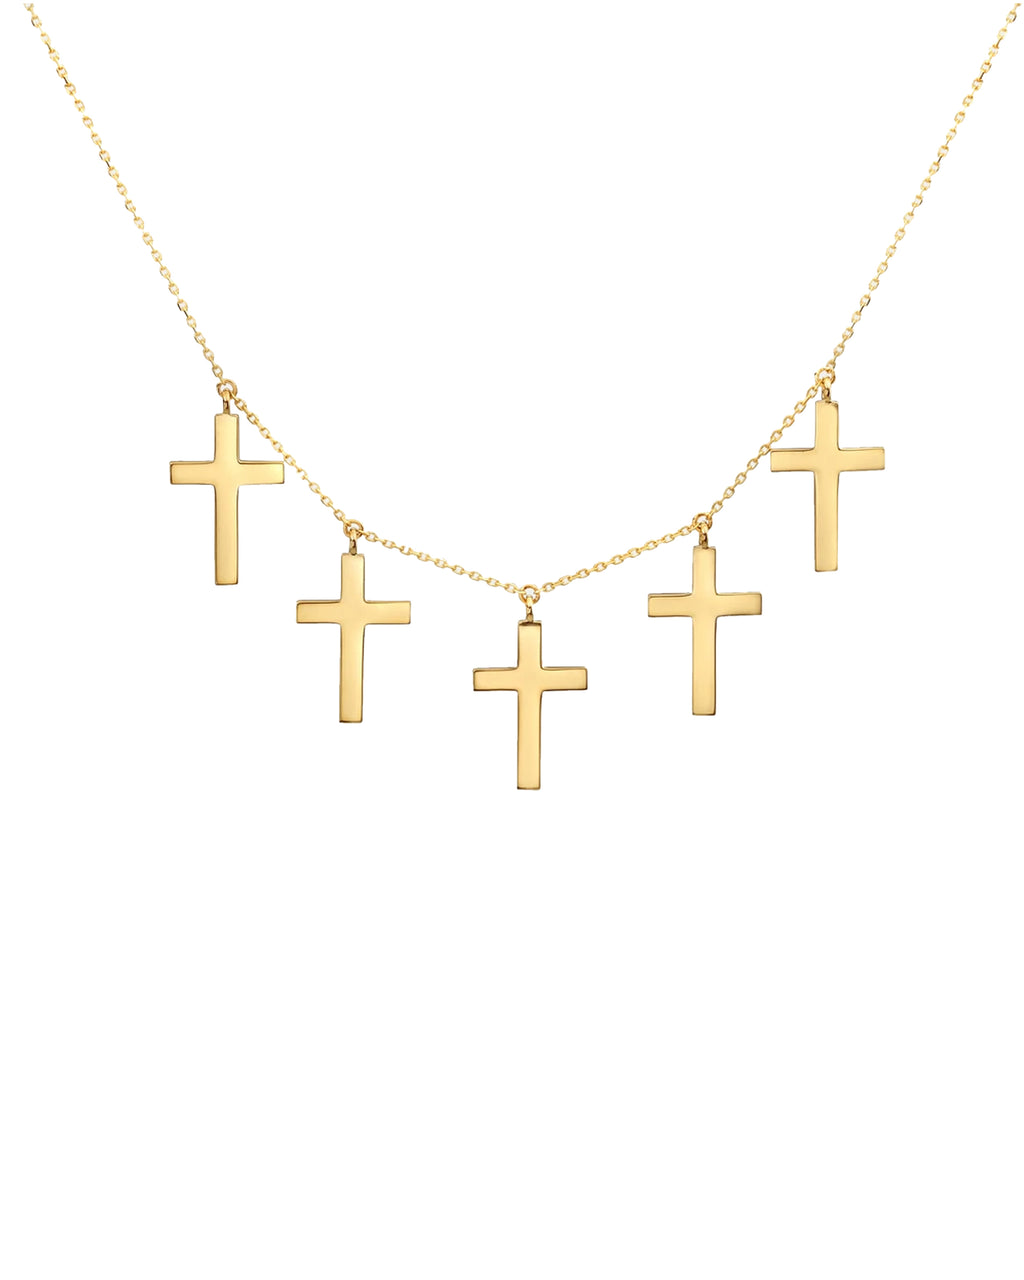 NMN1008 - 14k Holy Cross 5-charms Necklace - accessories - fine jewelry - Dangling from this 18 inch chain are 14-karat solid yellow gold crosses. The necklace is perfect as a solo piece, or works with layering. Simple clasp.